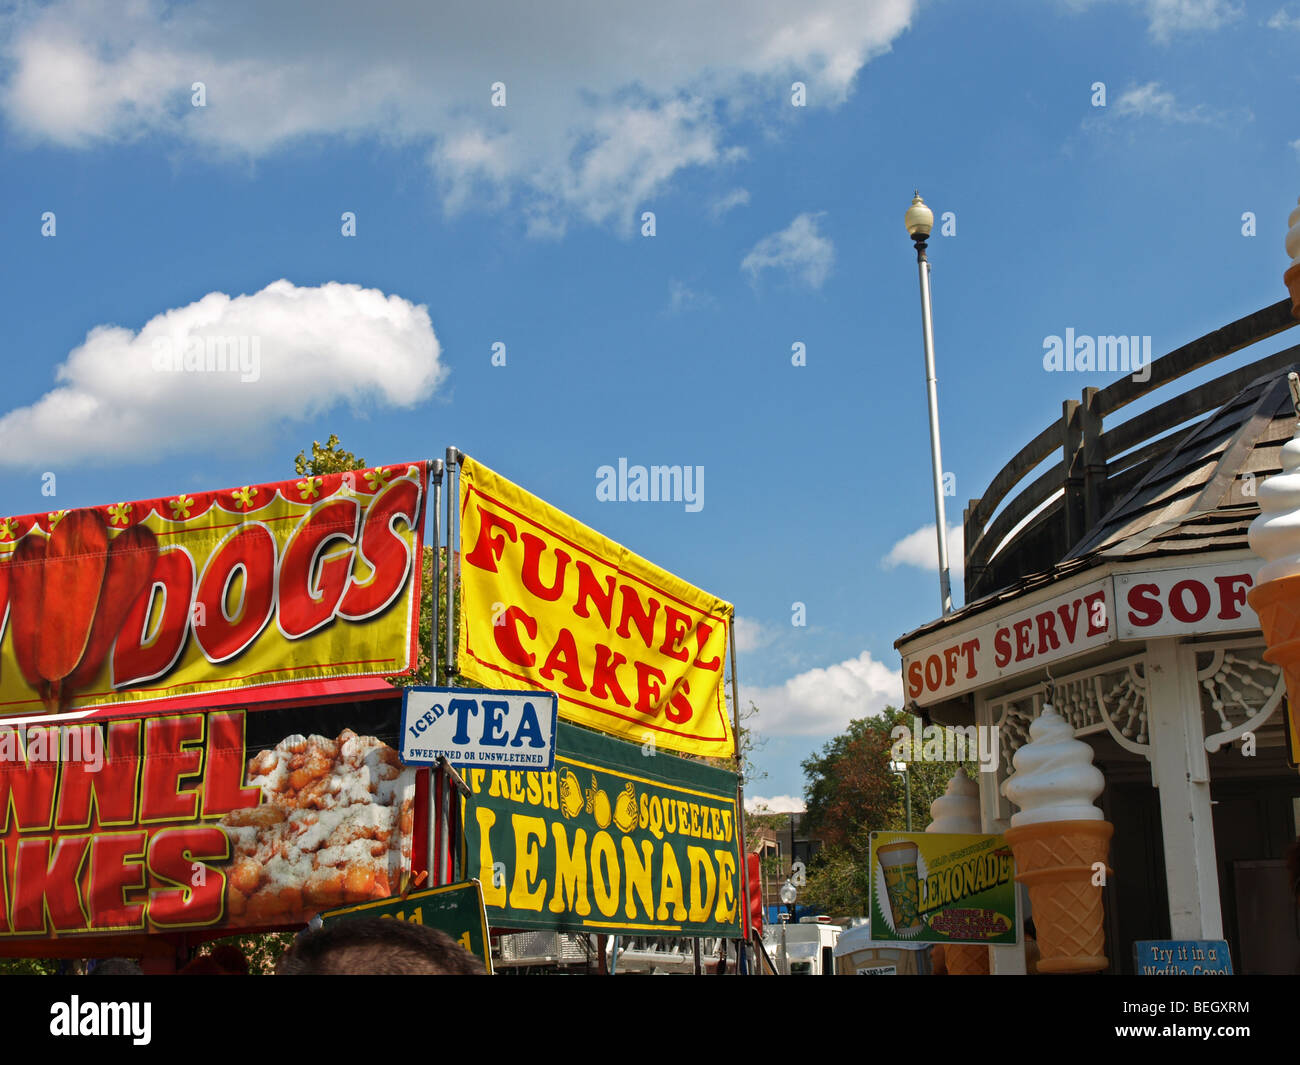 Vendor Food Stands For Festival Carnival Signs With Funnel